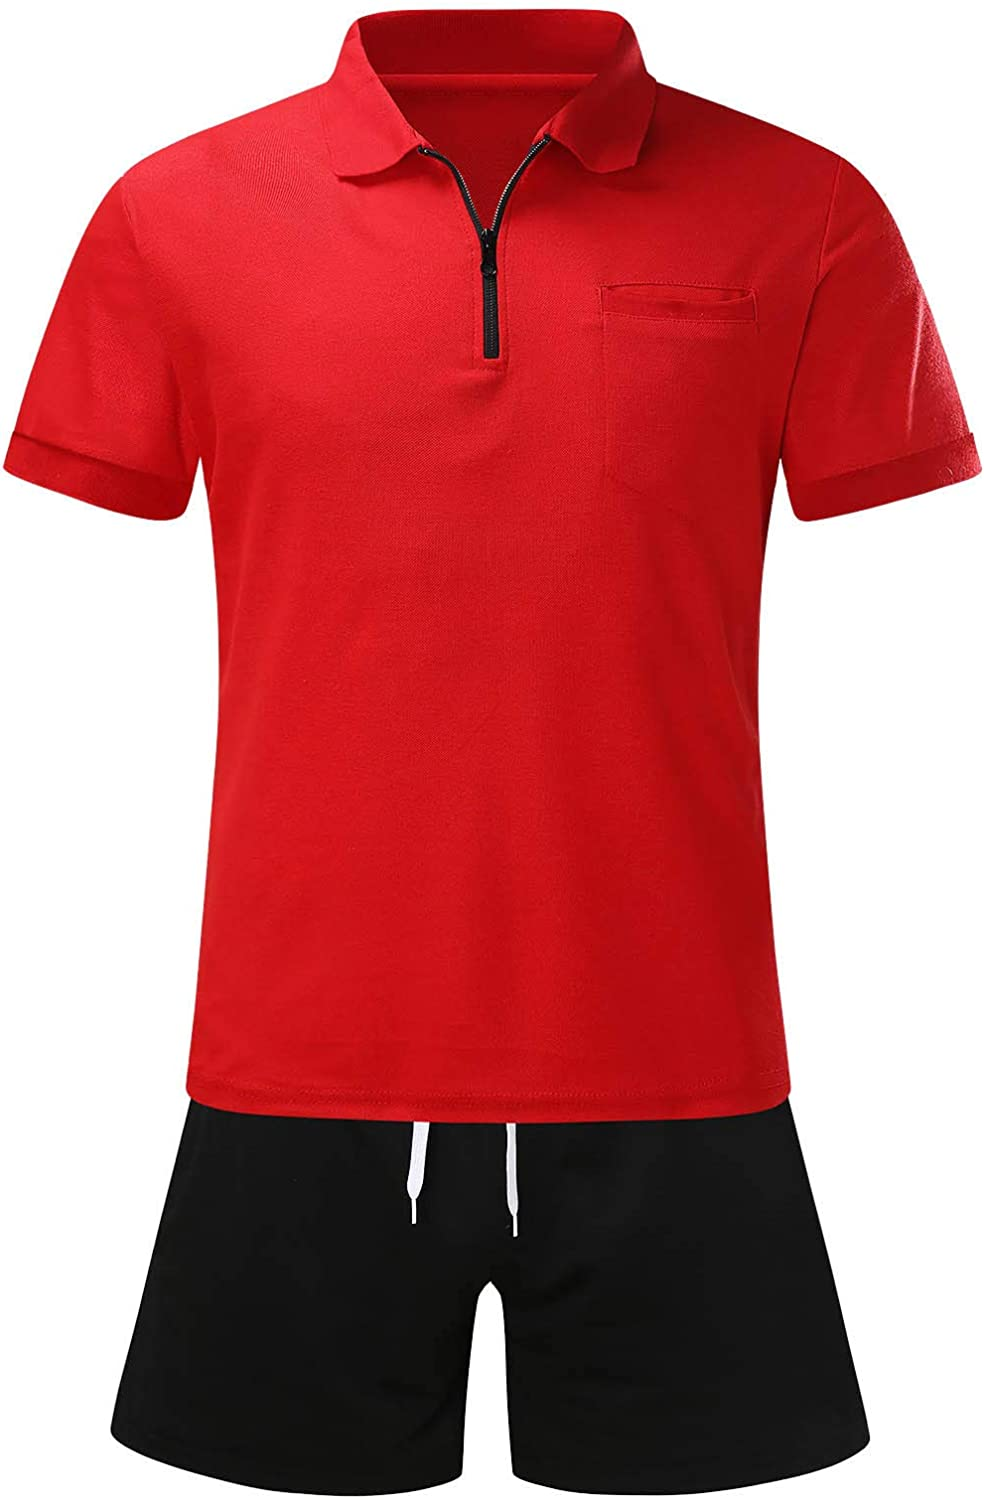 2 Piece Outfits for Mens 67% OFF of fixed price Short Tracksuits Credence Tall Sleeve Big Shorts